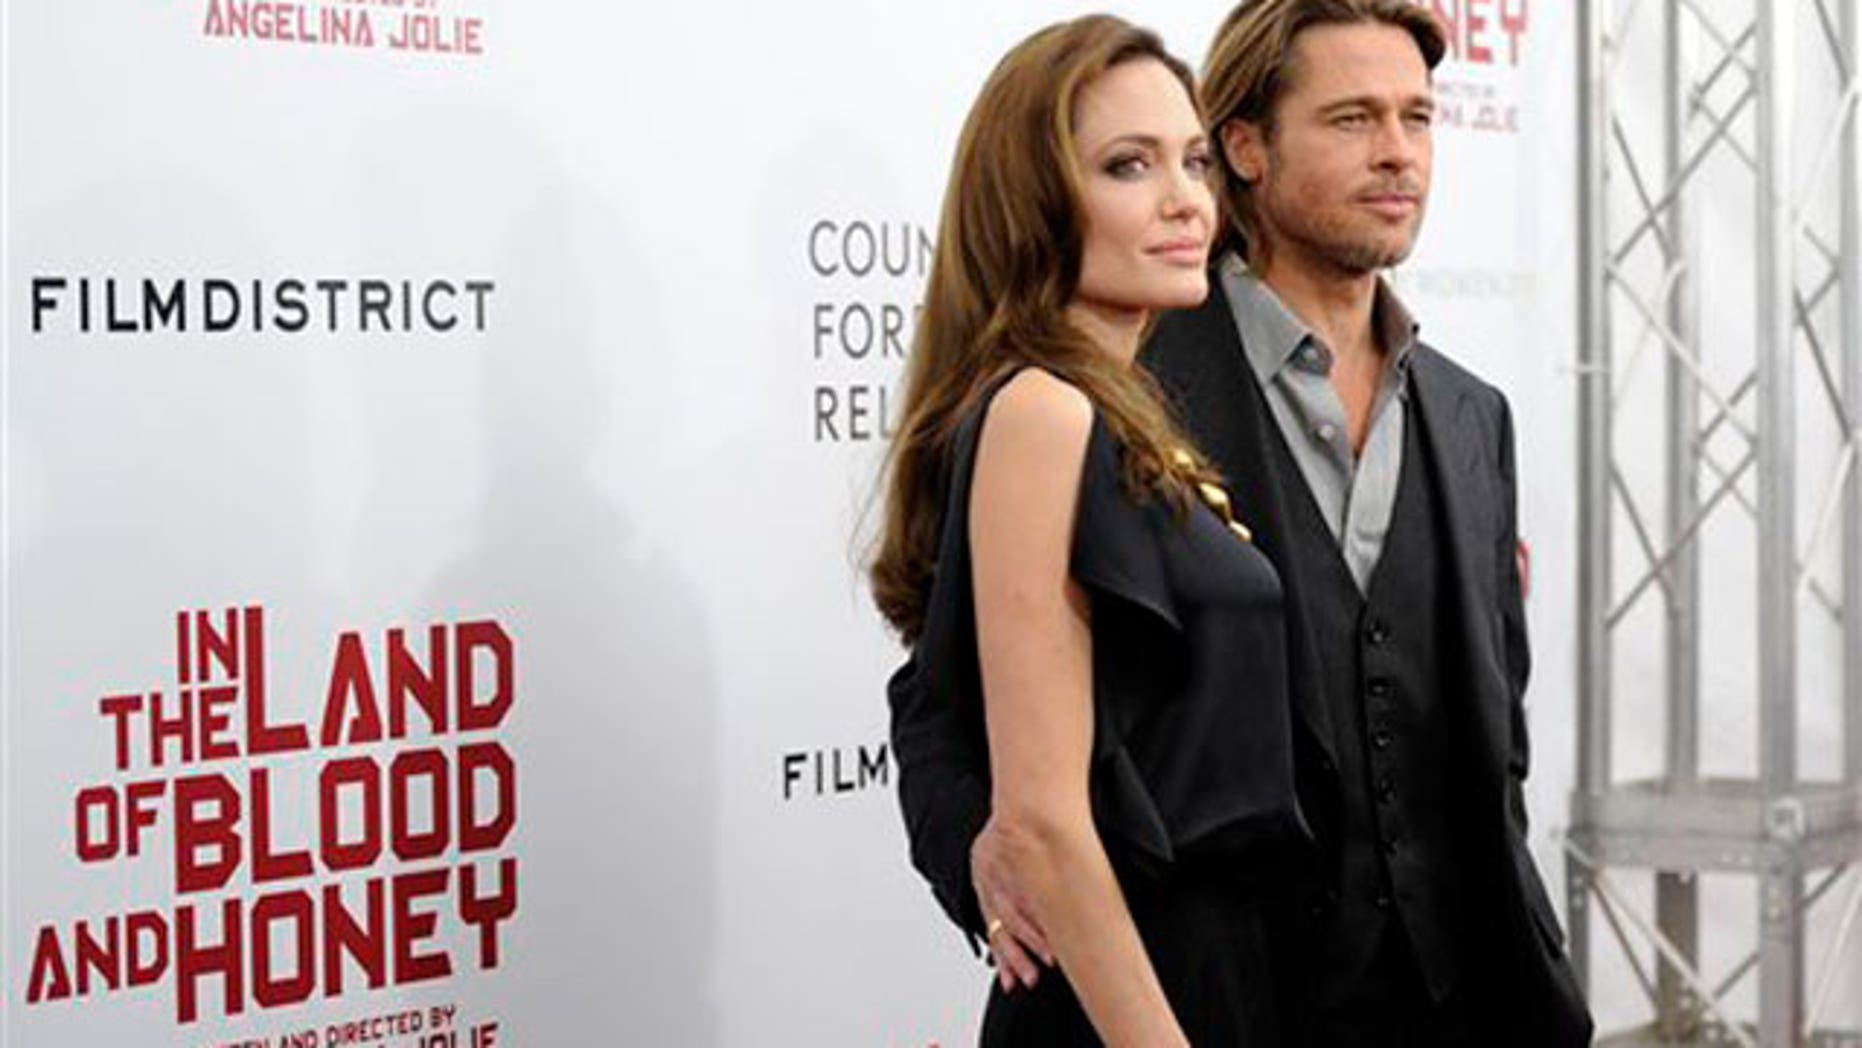 Dec. 5: Angelina Jolie and Brad Pitt at the premiere of her film 'In the Land of Blood and Honey' in New York City. (AP)